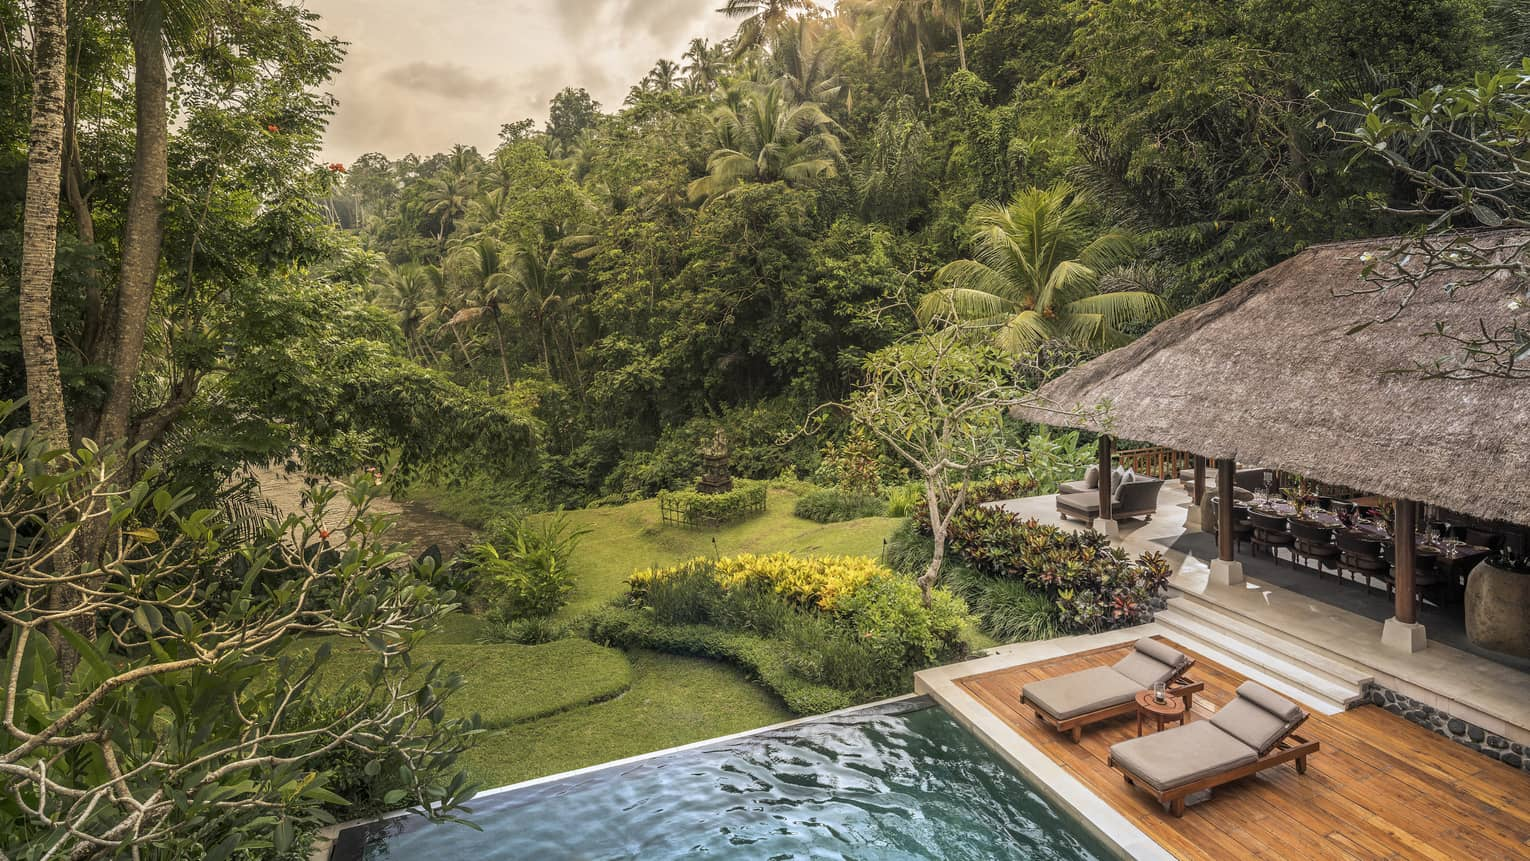 A villa with cushioned chairs and an infinity pool overlooking a river in Bali